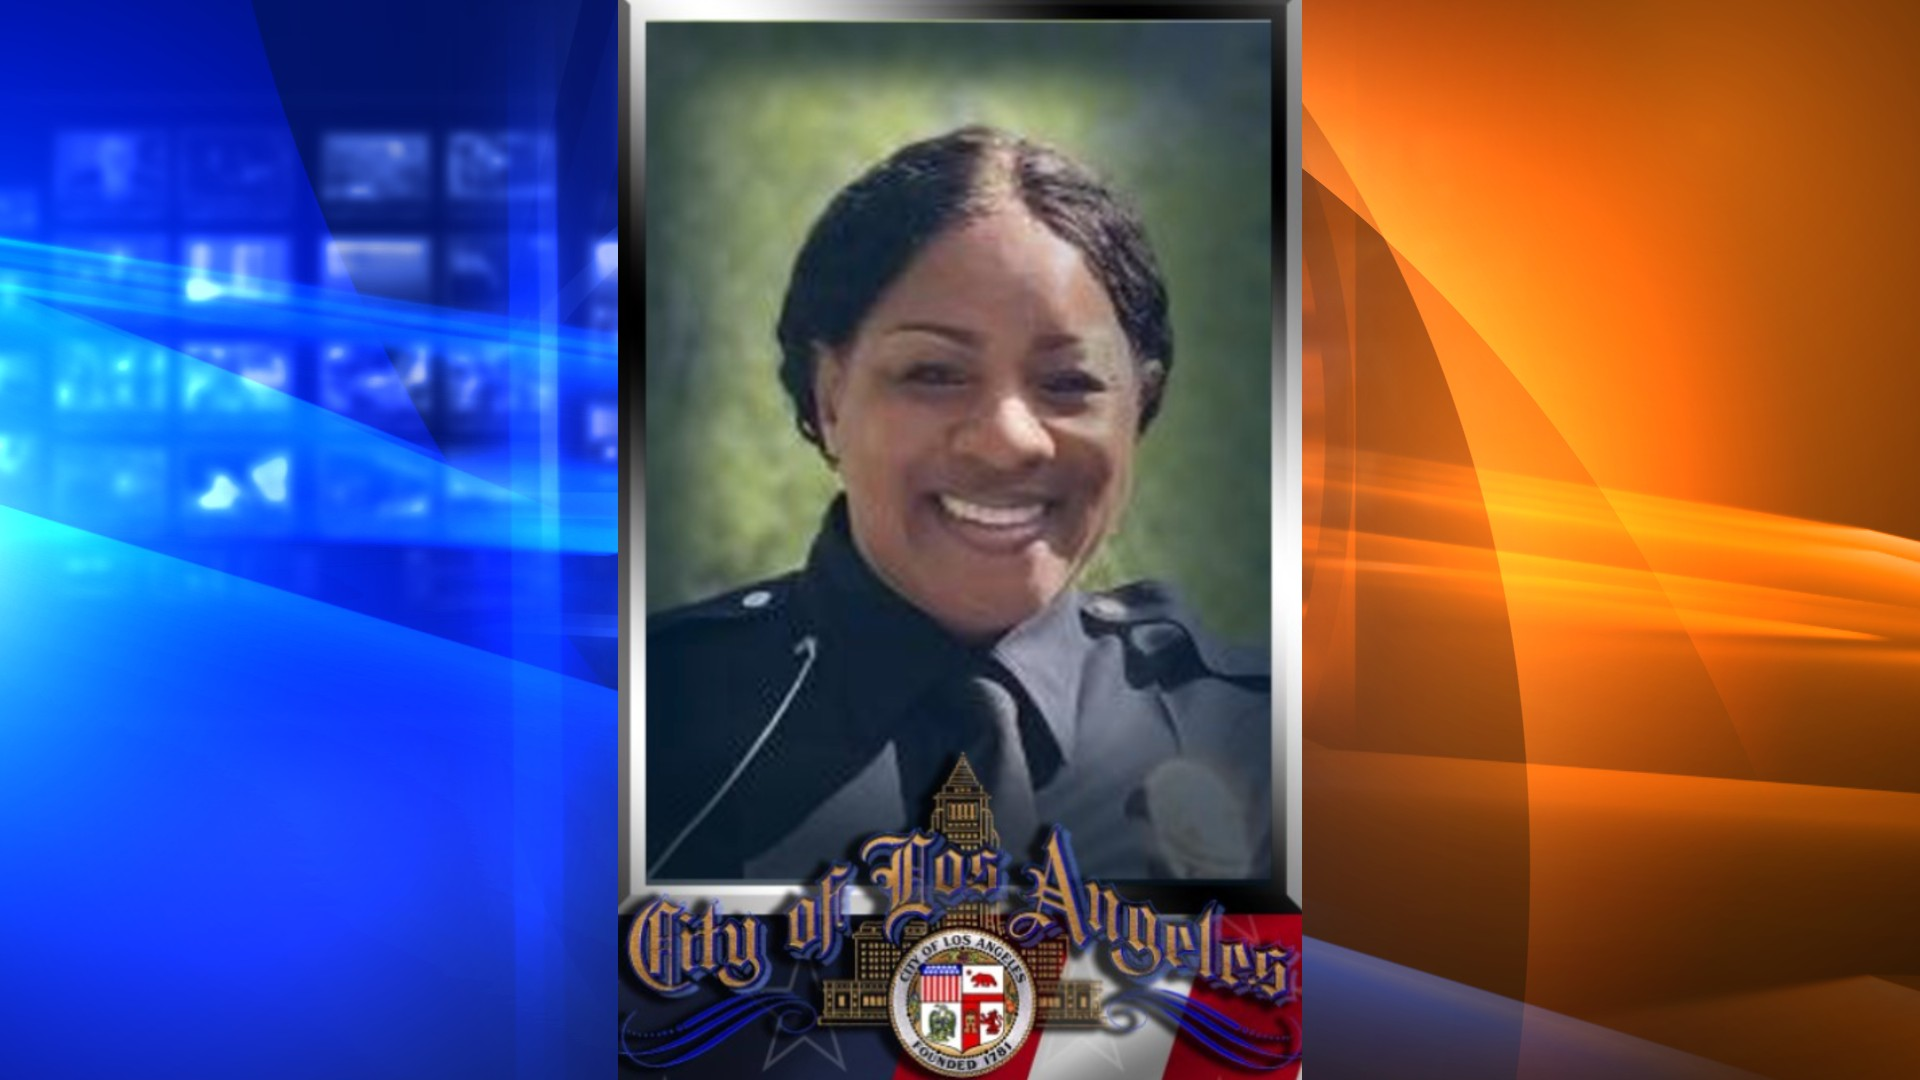 The LAPD shared a photo of Officer Becky Strong, who died from COVID-19 complications on Aug. 2, 2021.